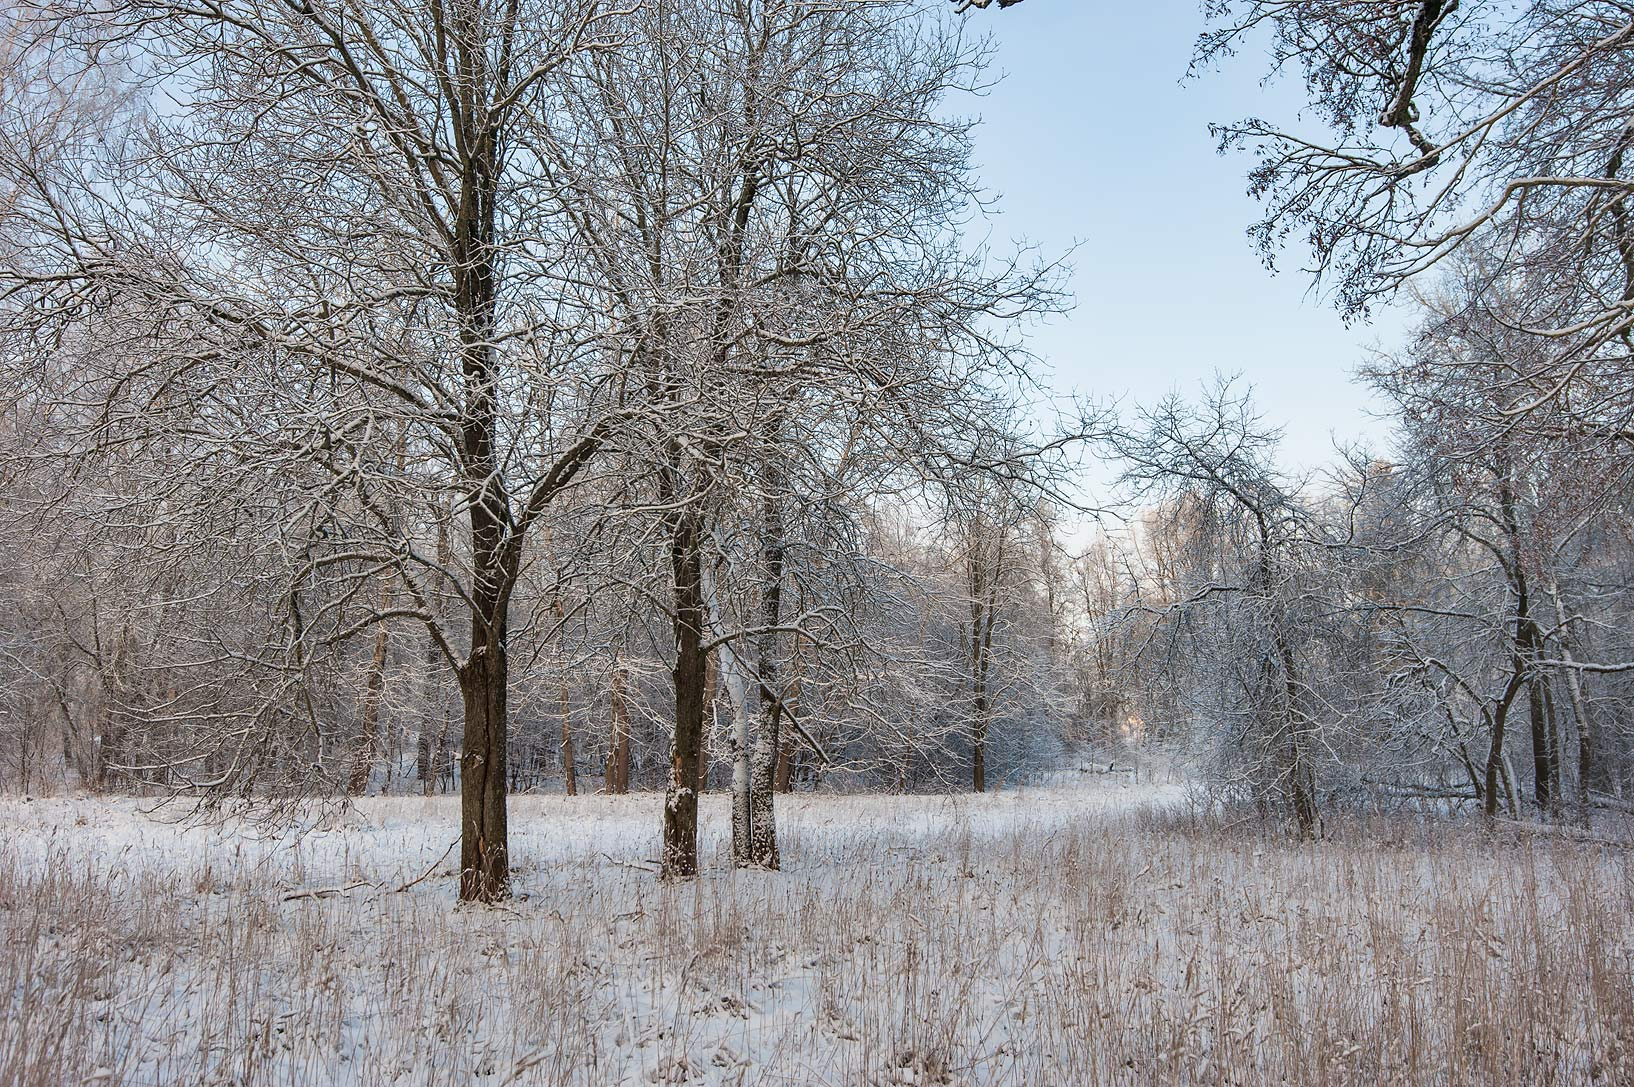 Snowy forest in Rozhdestveno Village. Gatchina District of Leningrad Region, Russia